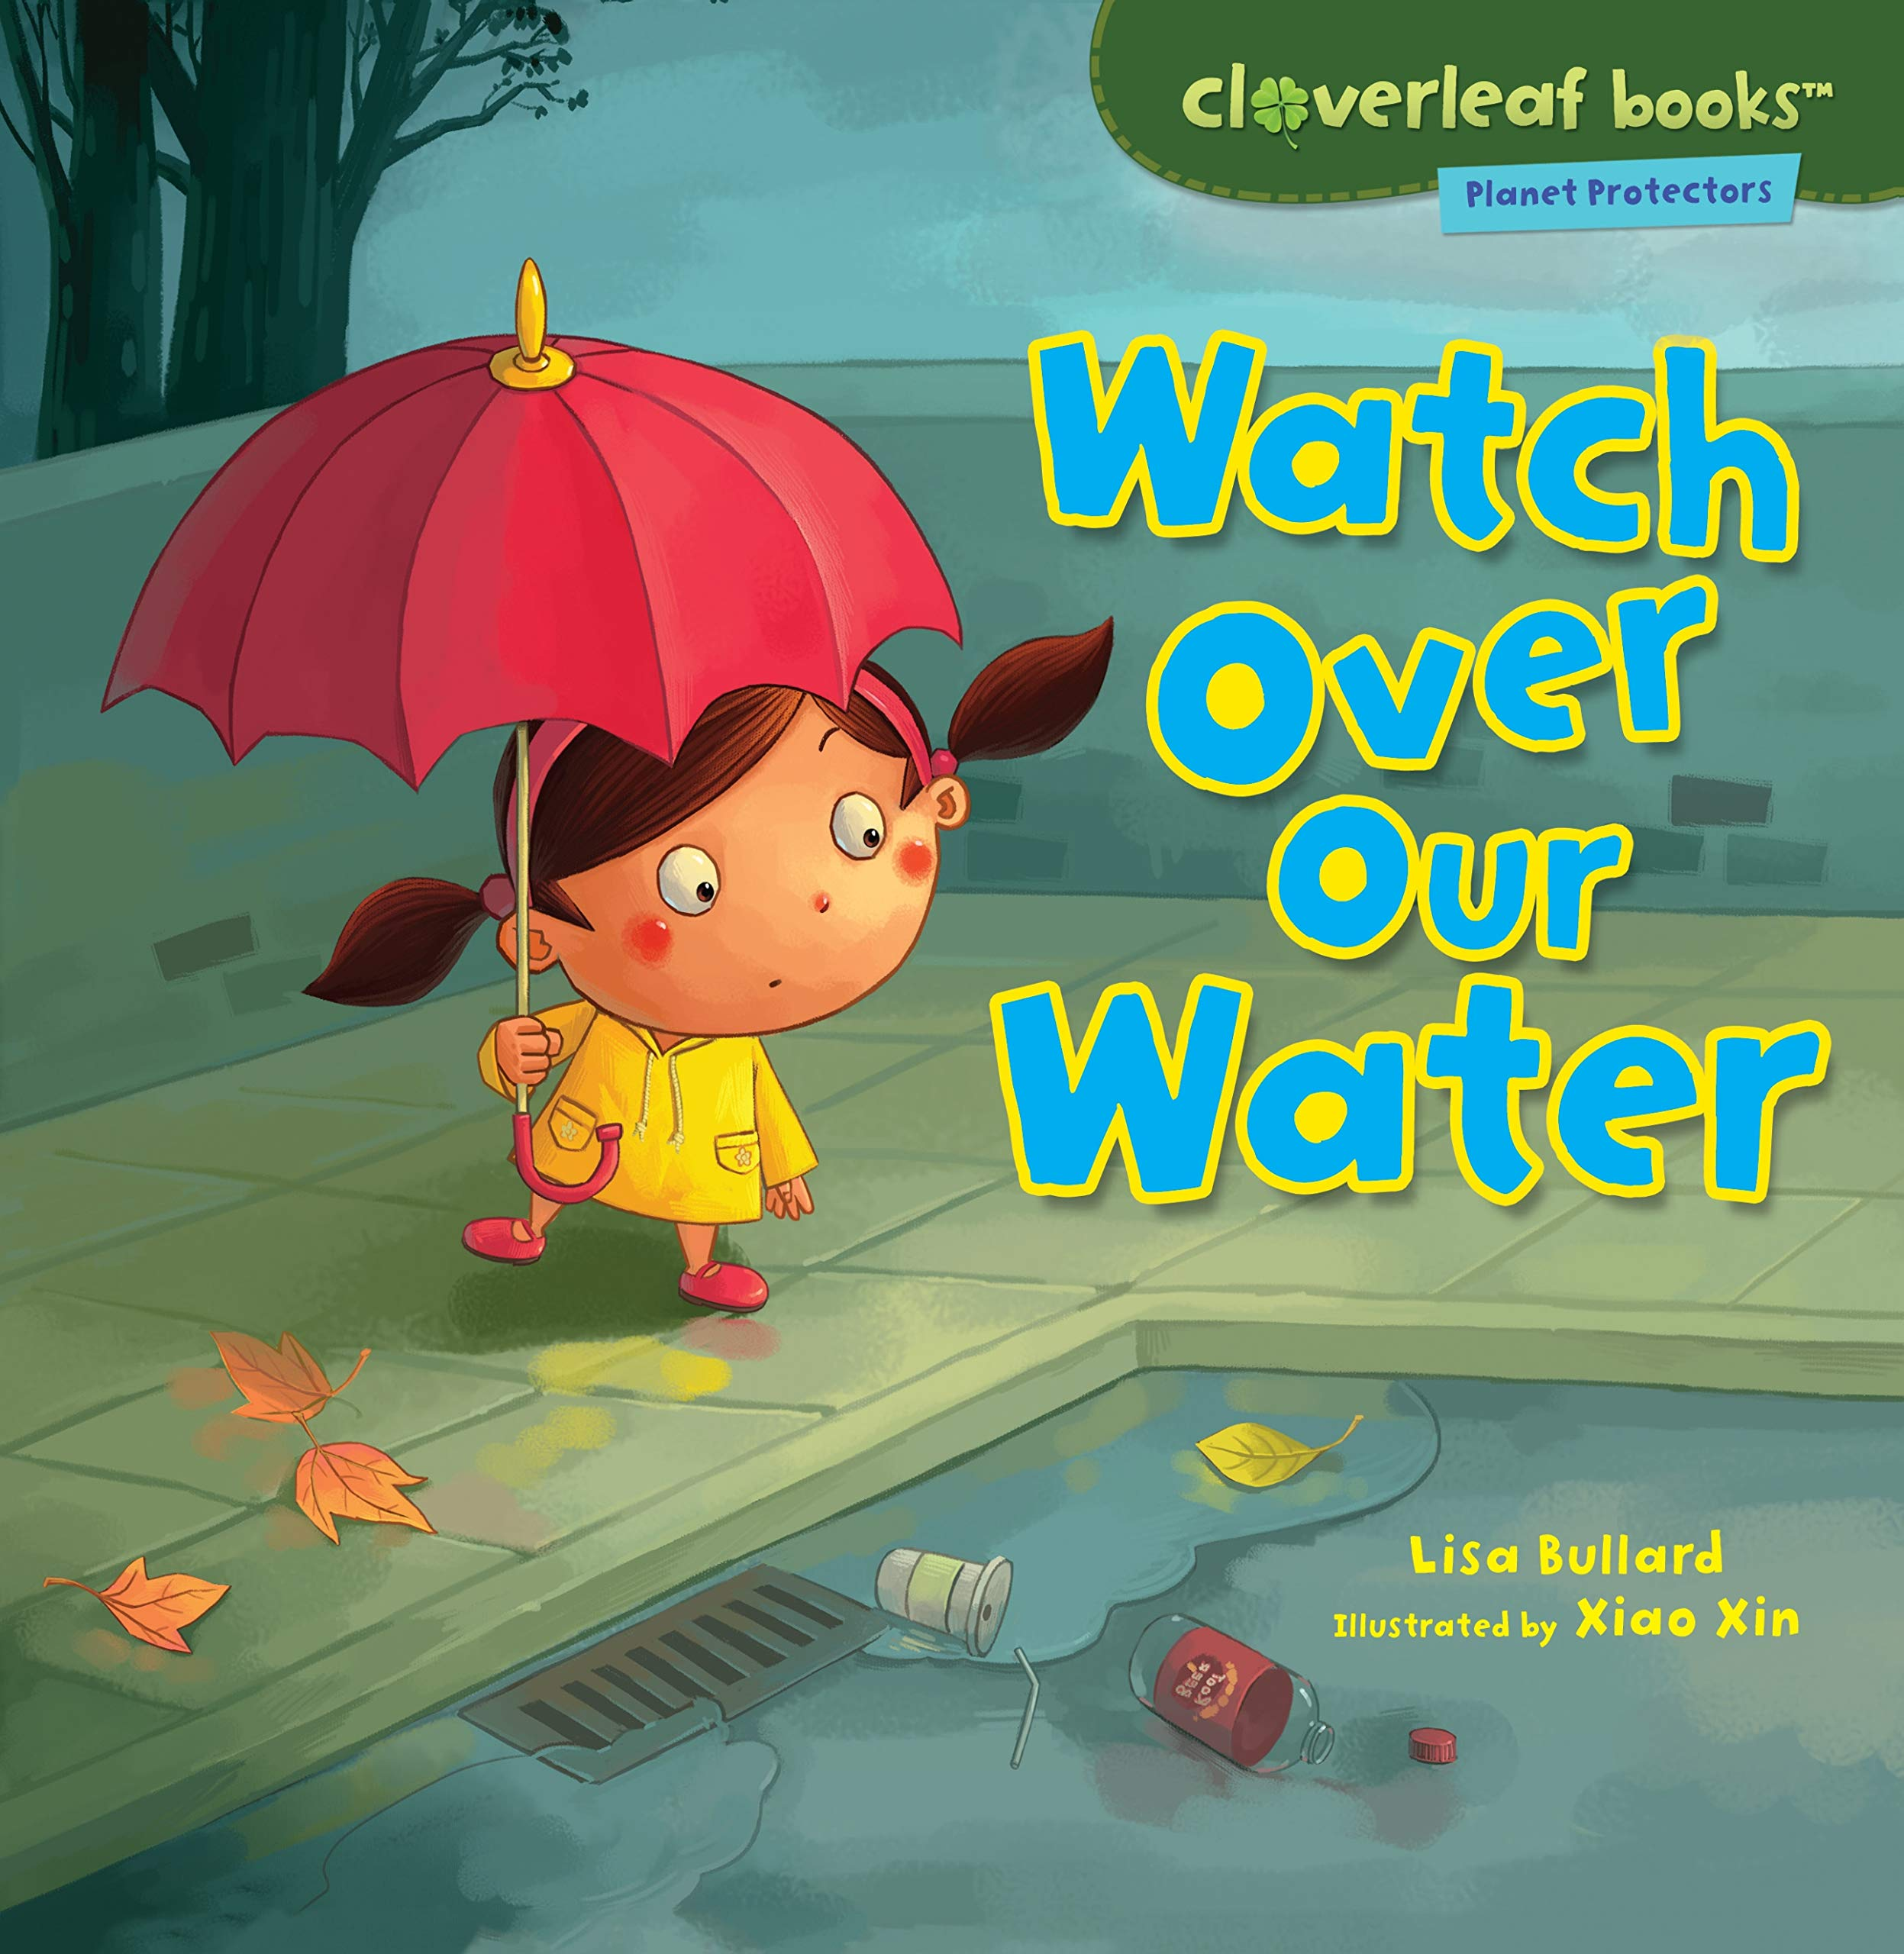 Read Online Watch over Our Water (Cloverleaf Books - Planet Protectors) PDF